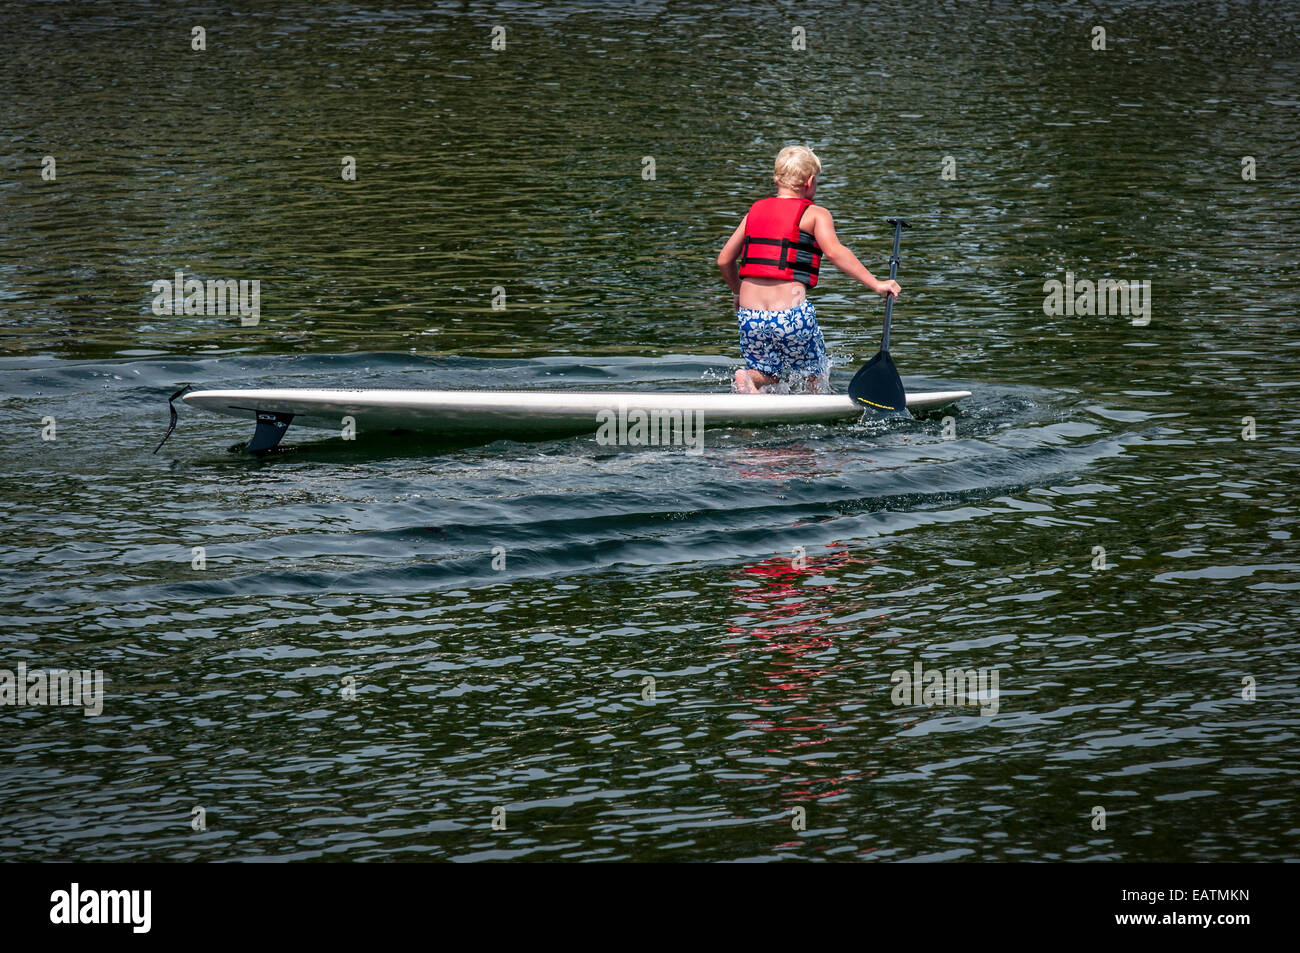 This young boy is having so much fun on his paddle board, he did not realize that his swim trunks are falling down. - Stock Image